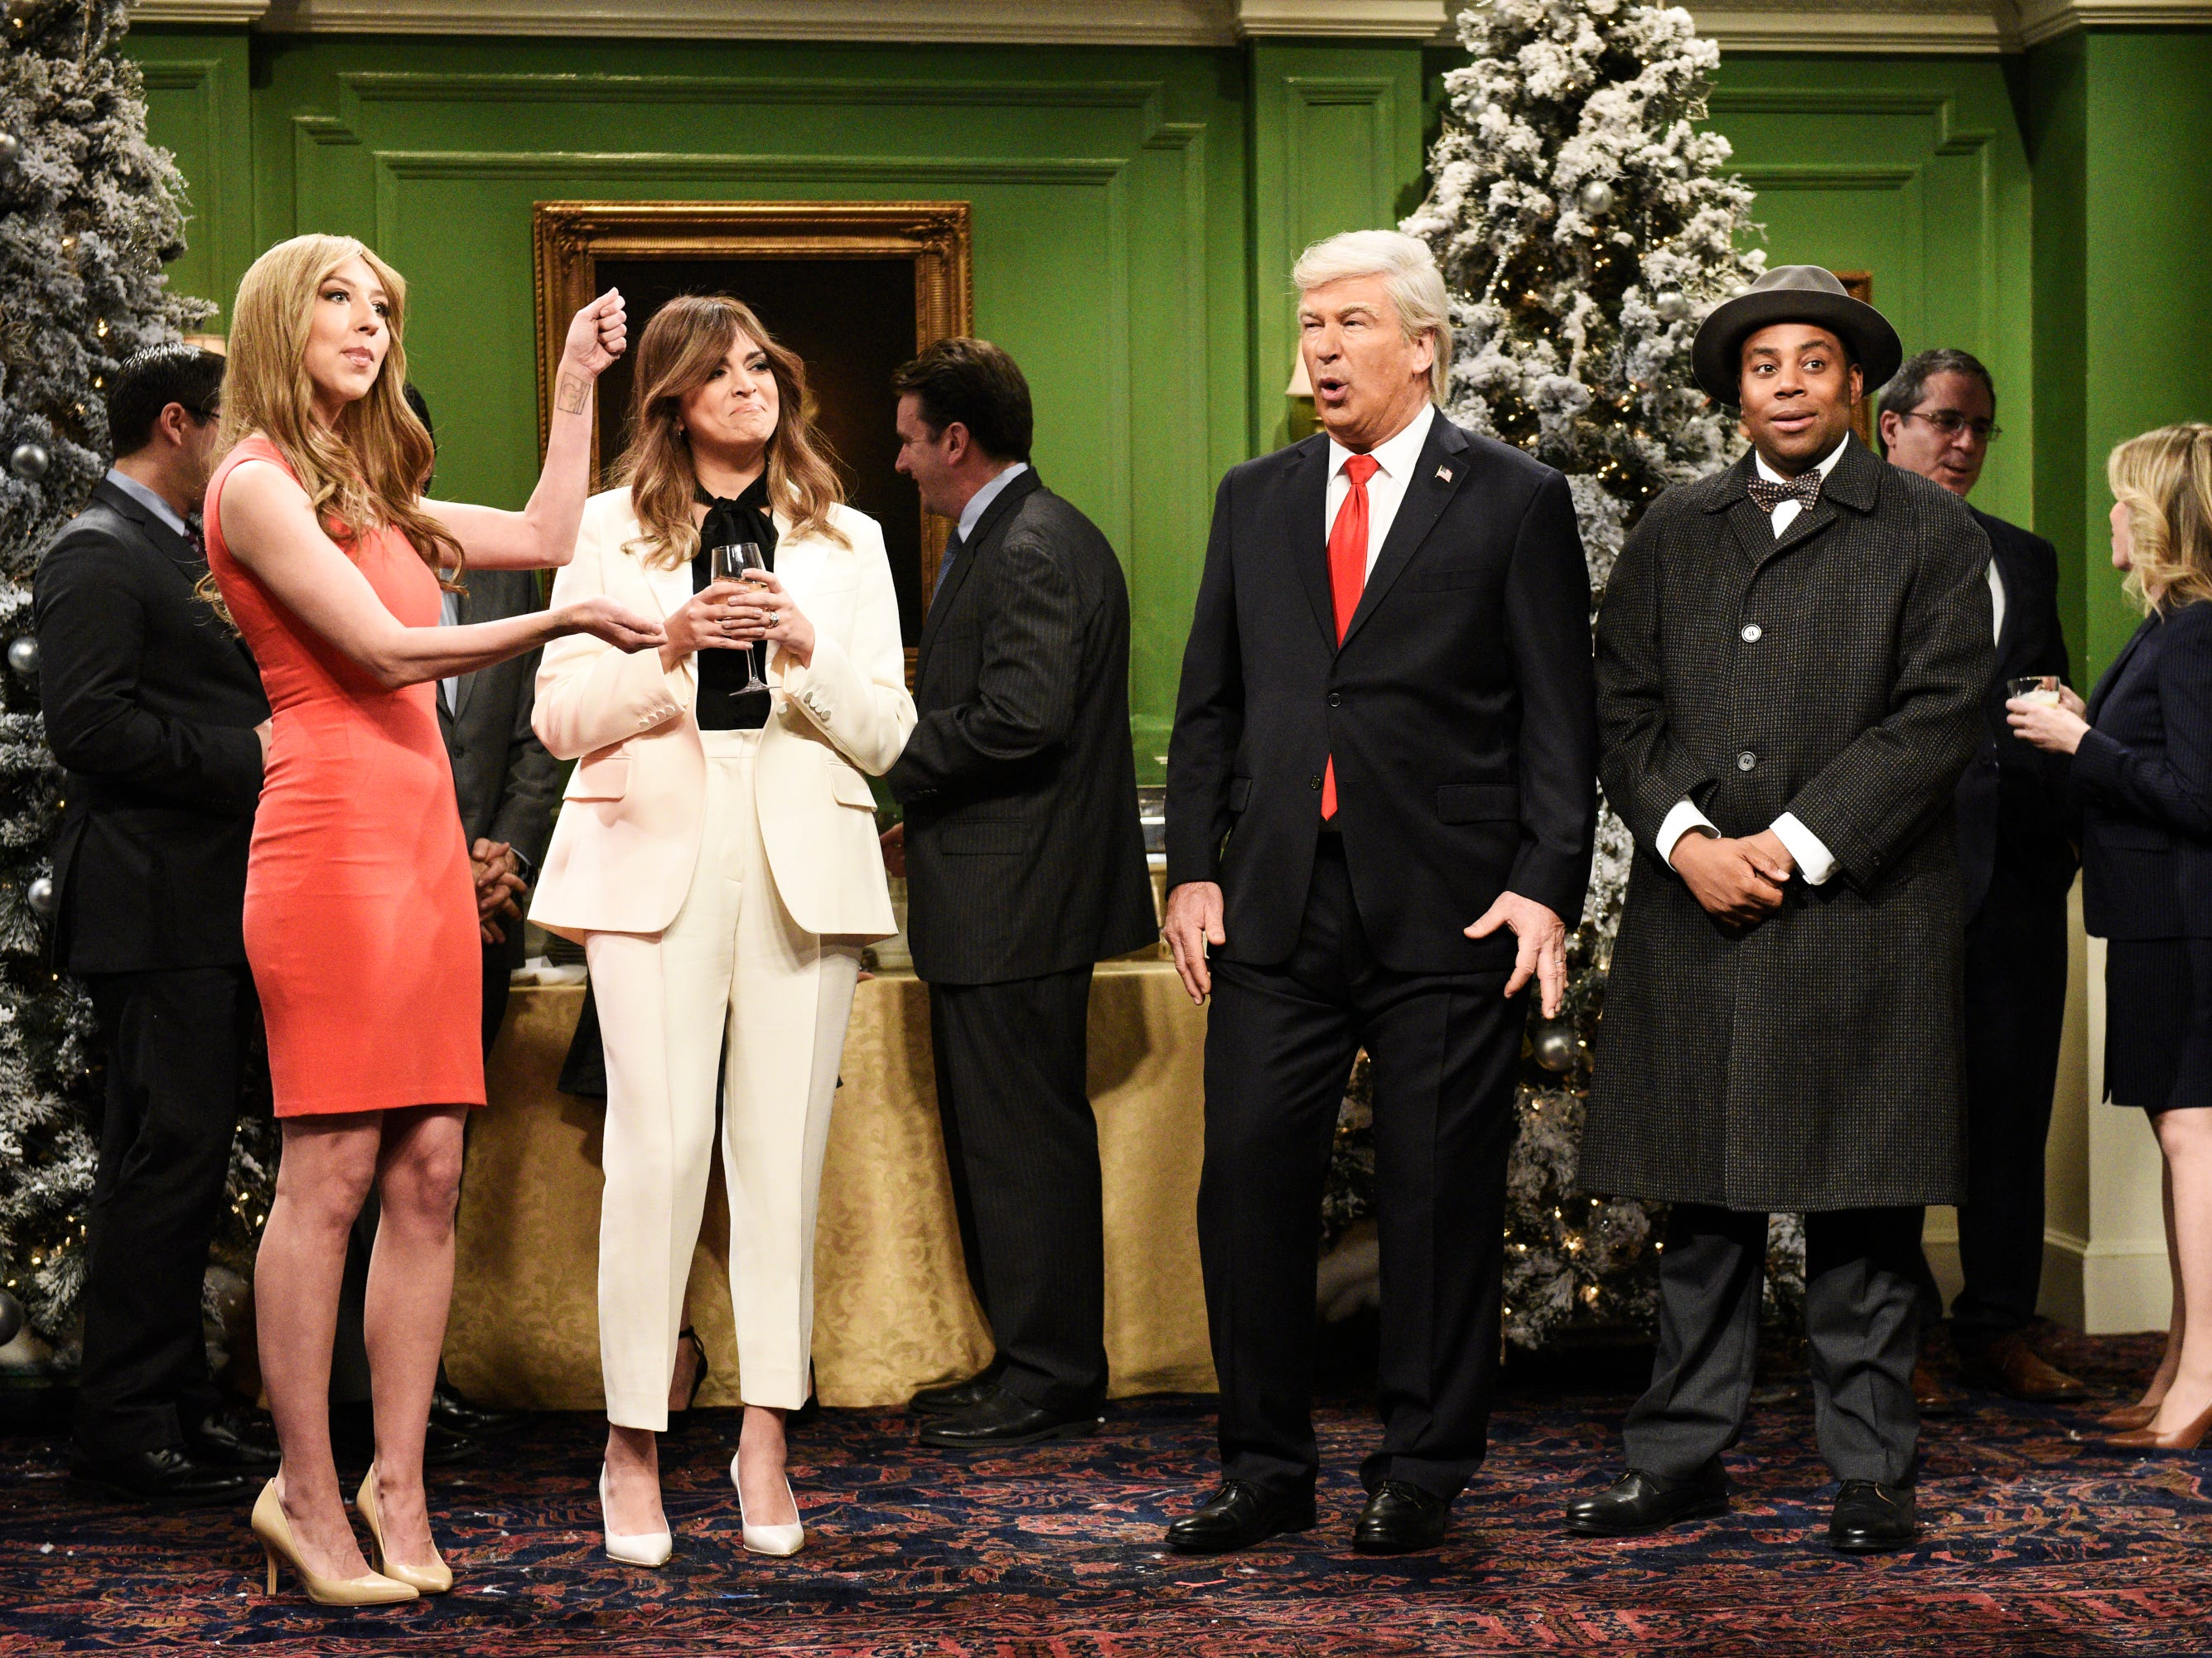 """SATURDAY NIGHT LIVE -- """"Matt Damon"""" Episode 1755 -- Pictured: (l-r) Heidi Gardner as Hernia Trump, Cecily Strong as Melania Trump, Alec Baldwin as Donald Trump, and Kenan Thompson as Clarence the angel during the ?It?s a Wonderful Trump? Cold Open in Studio 8H on Saturday, December 15, 2018 -- (Photo by: Will Heath/NBC) ORG XMIT: Season:44 [Via MerlinFTP Drop]"""